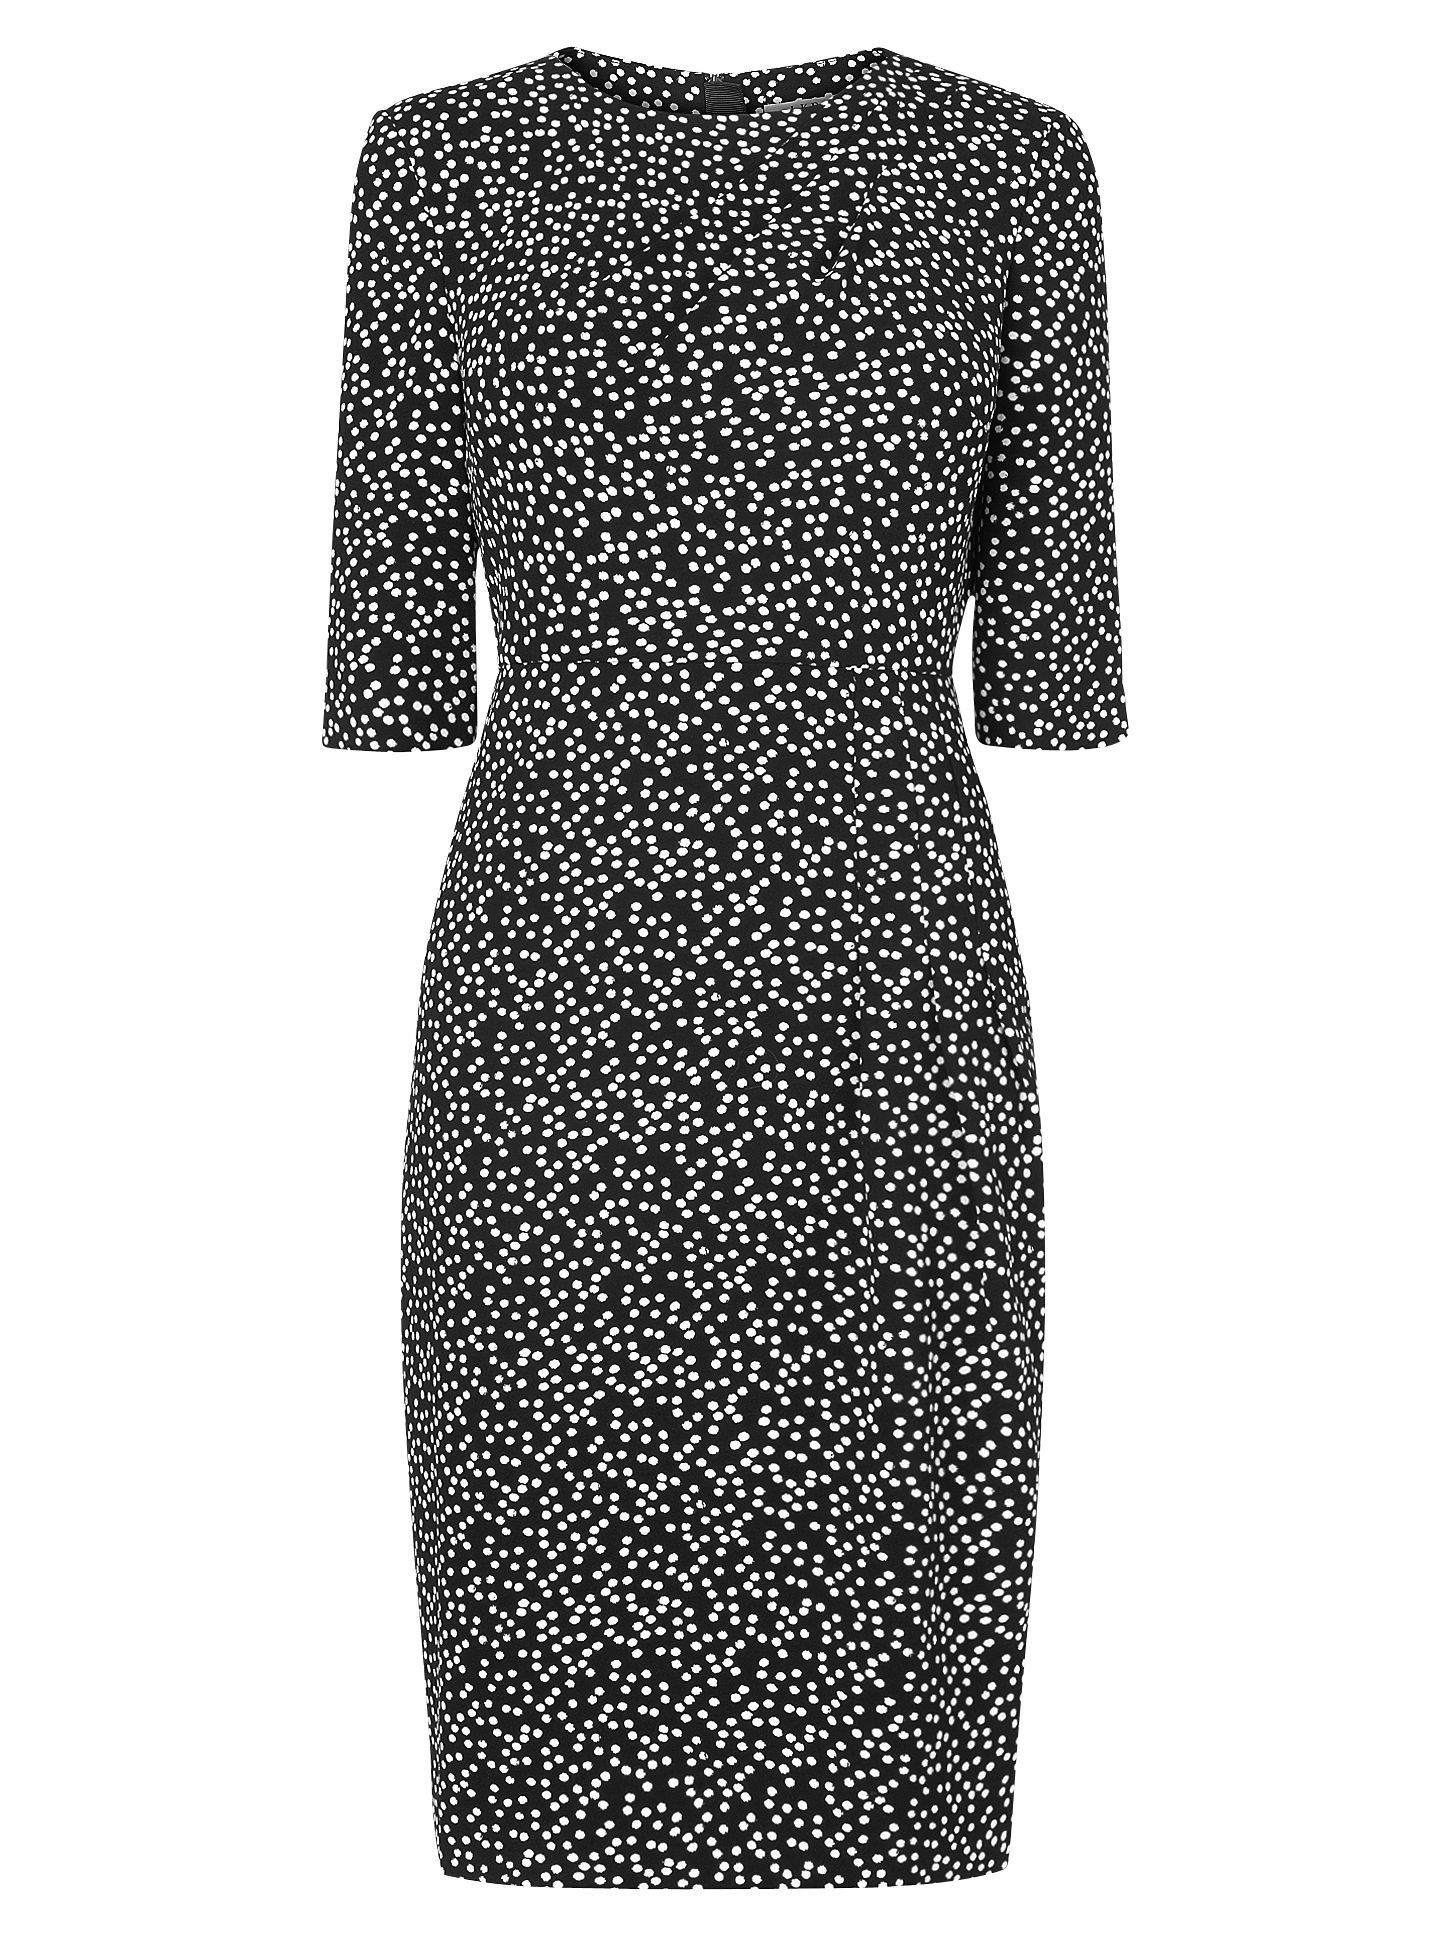 lk bennett yolanda printed dress cream/black, bennett, yolanda, printed, dress, cream/black, lk bennett, 10|12|8|14|18|6|16, women, womens dresses, gifts, wedding, wedding clothing, female guests, new season workwear, 1843396